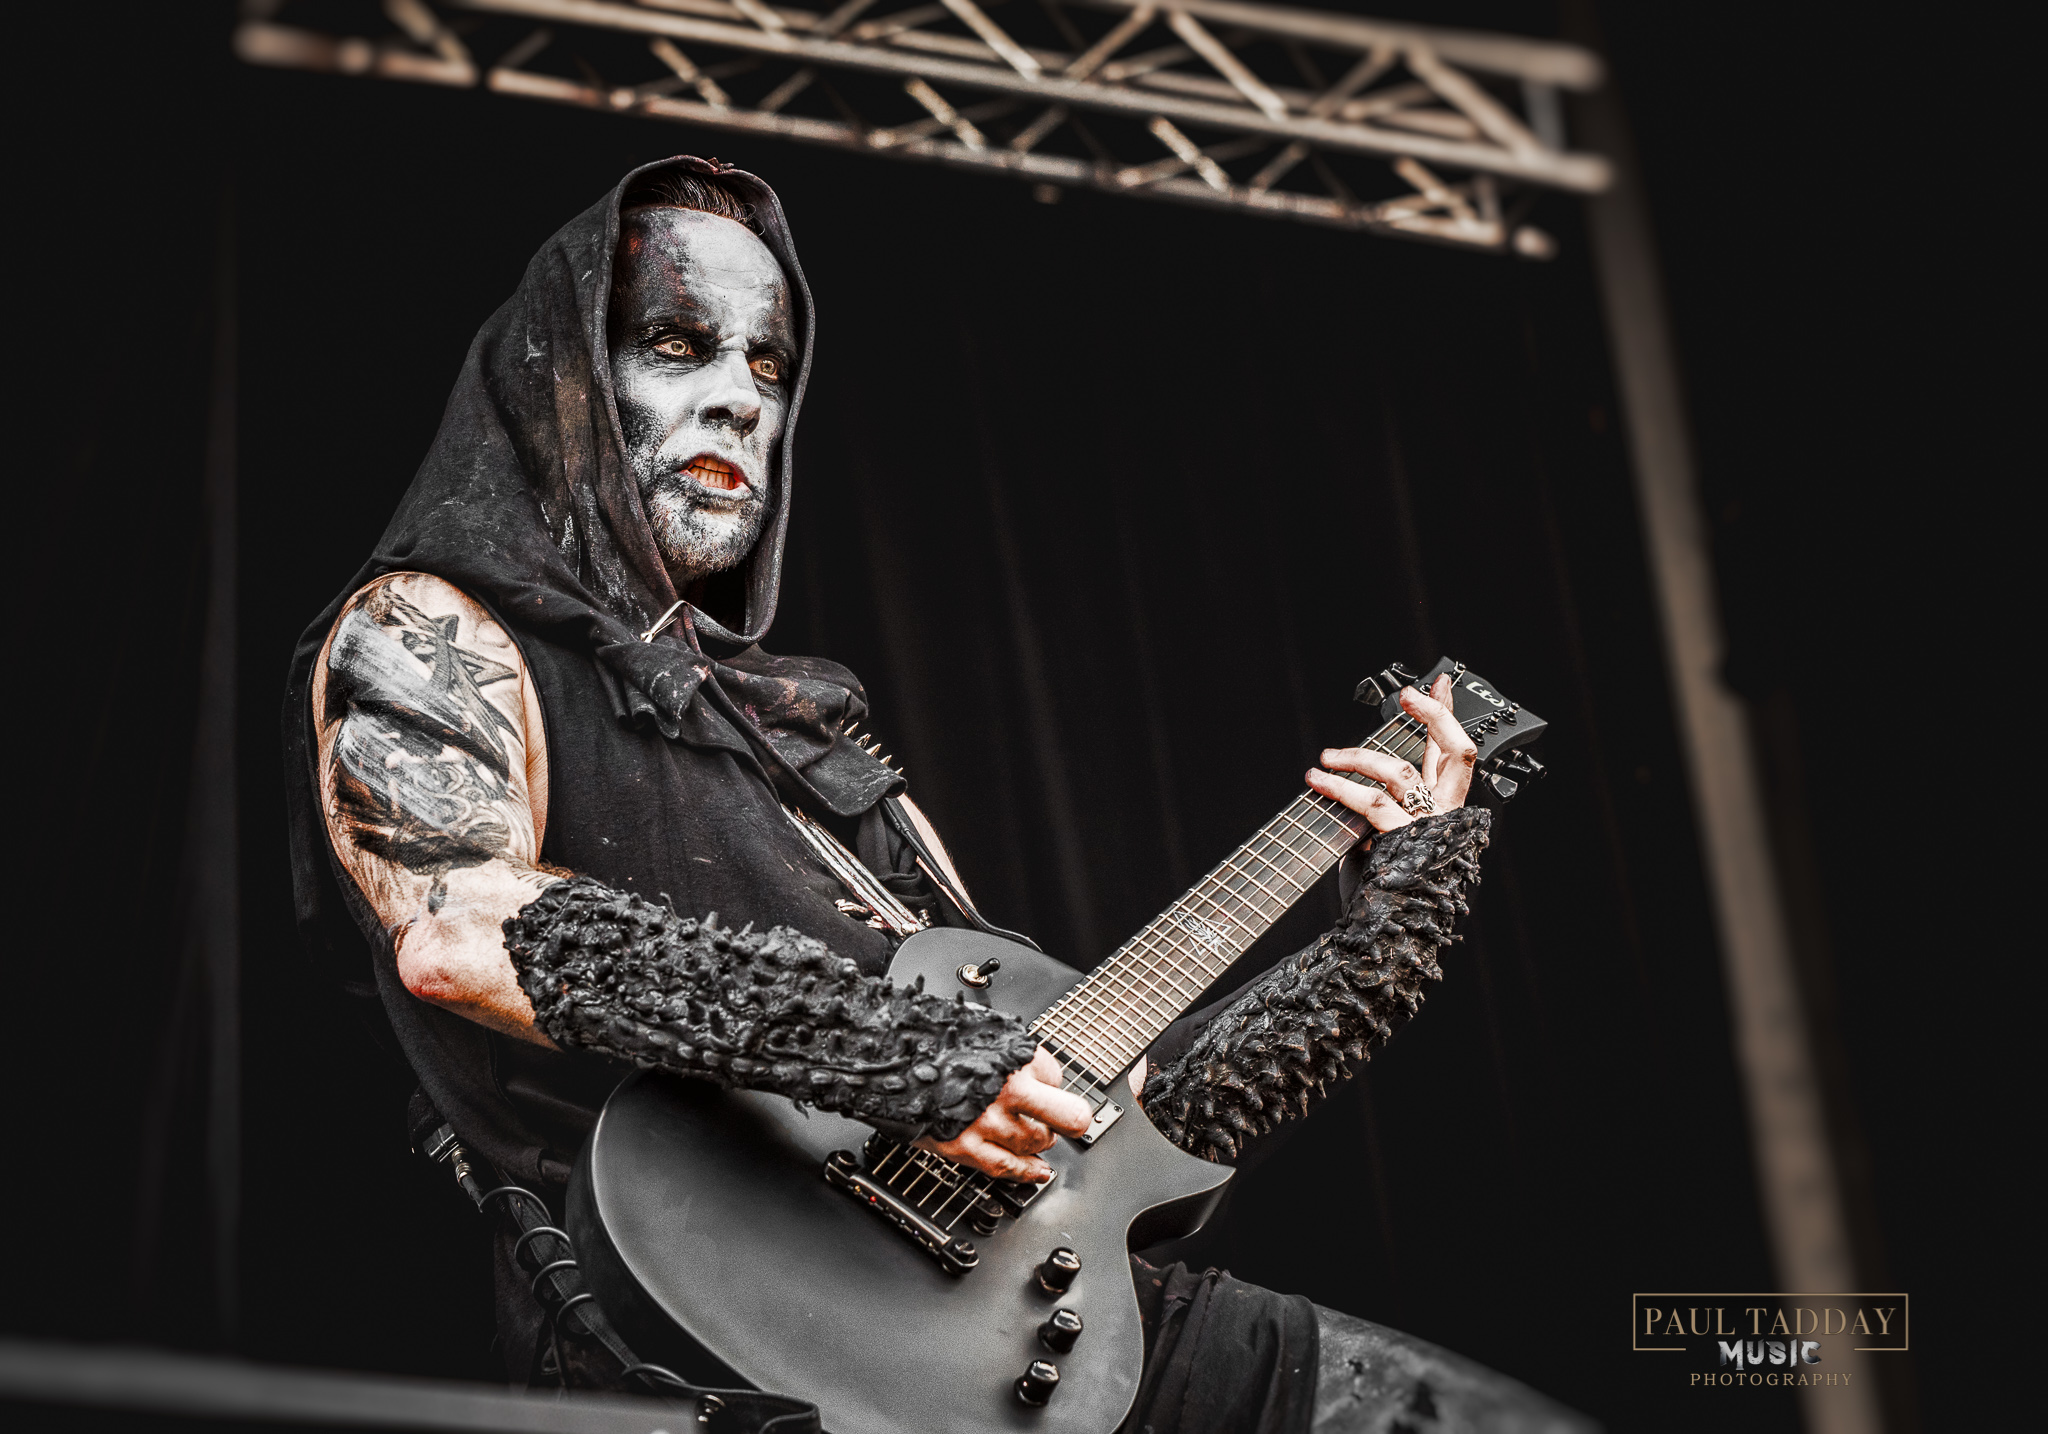 behemoth - download melbourne - march 2019 - web - paul tadday photography - 6.jpg